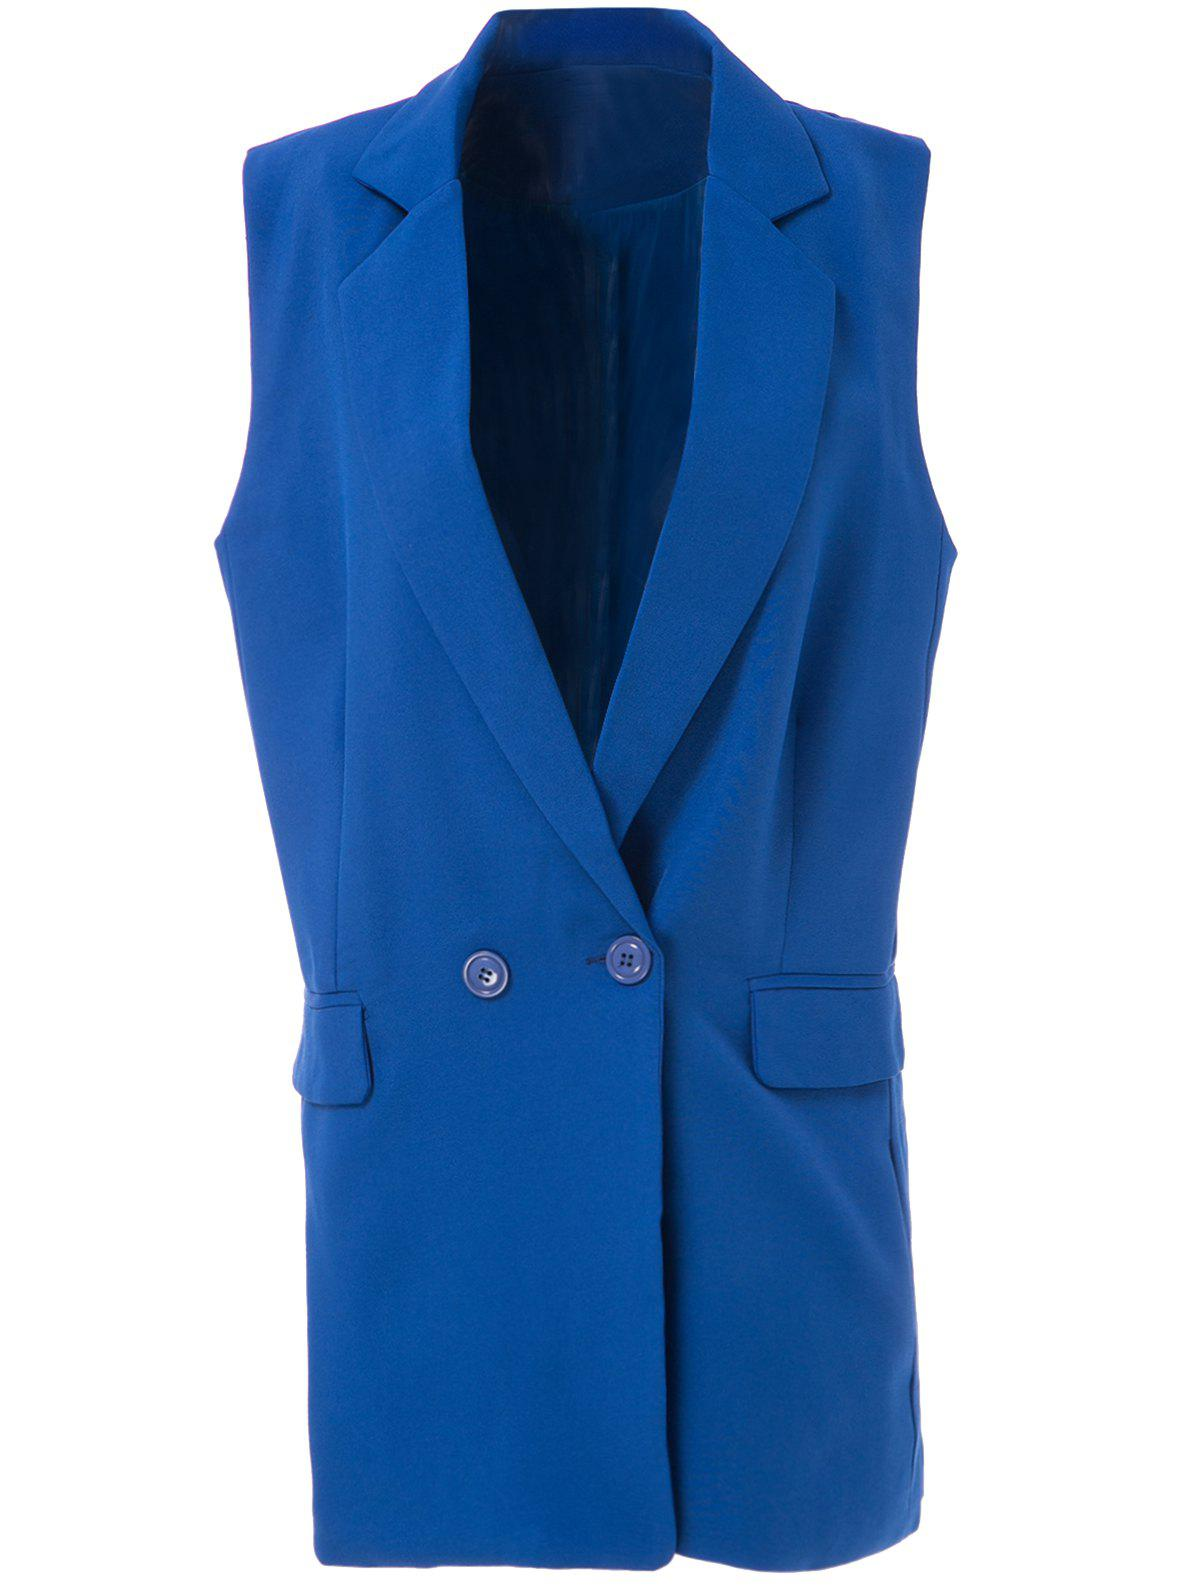 Elegant Shawl Collar Solid Color Bodycon Blazer For WomenWomen<br><br><br>Size: M<br>Color: SAPPHIRE BLUE